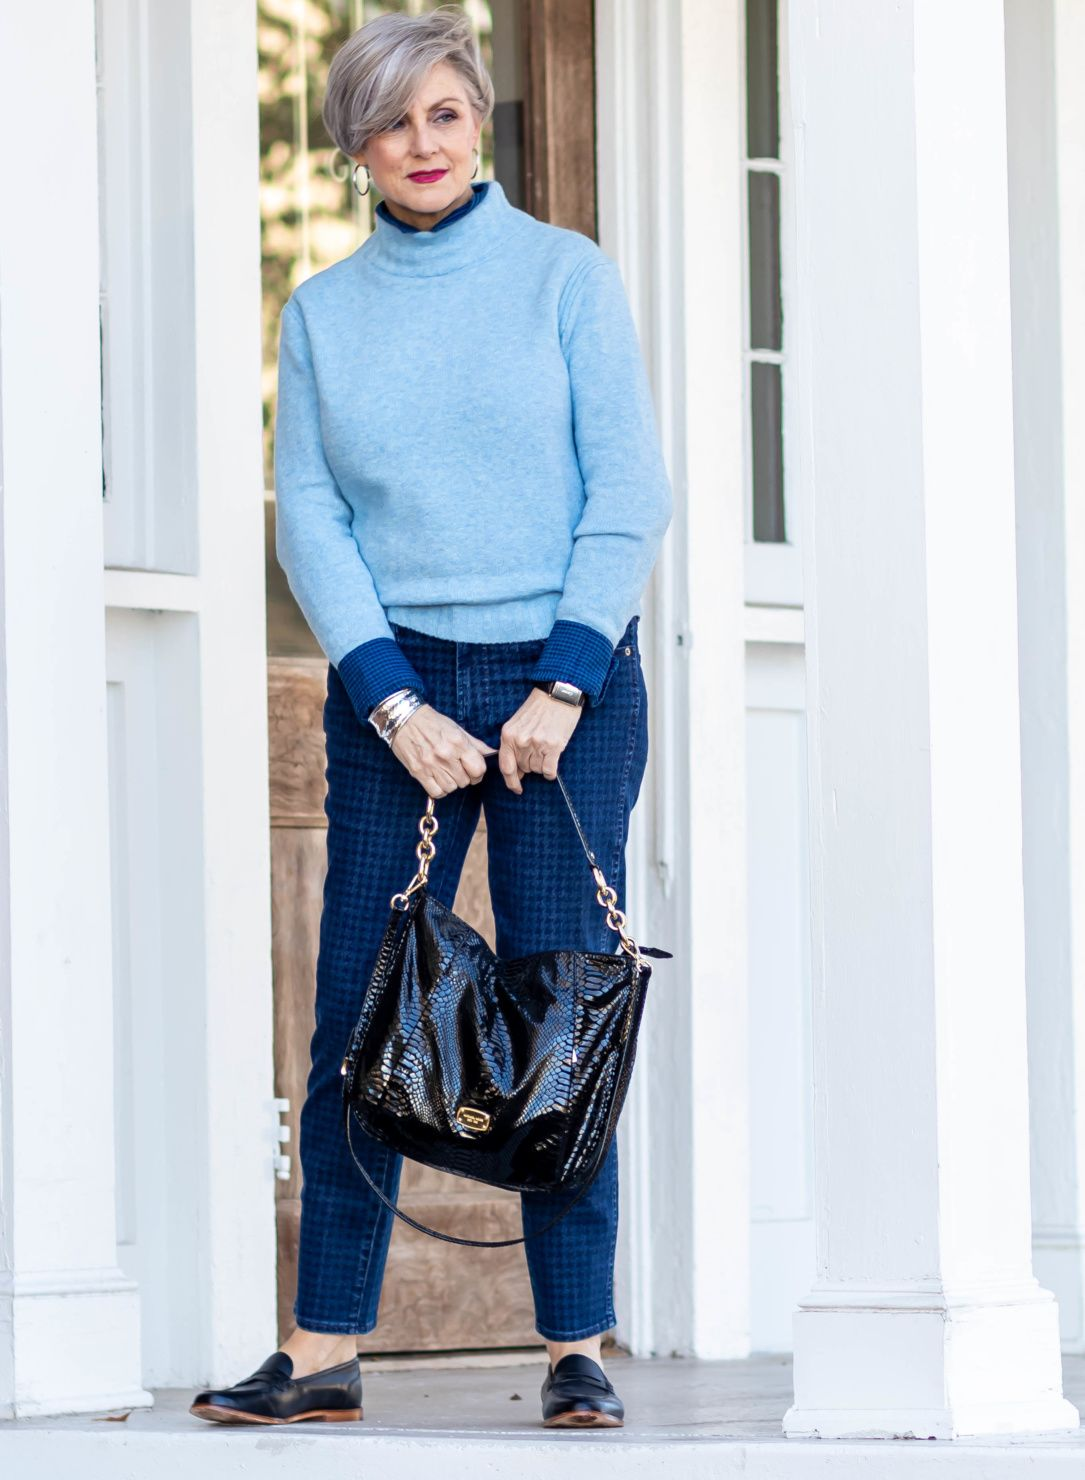 How to Dress Preppy in the Winter